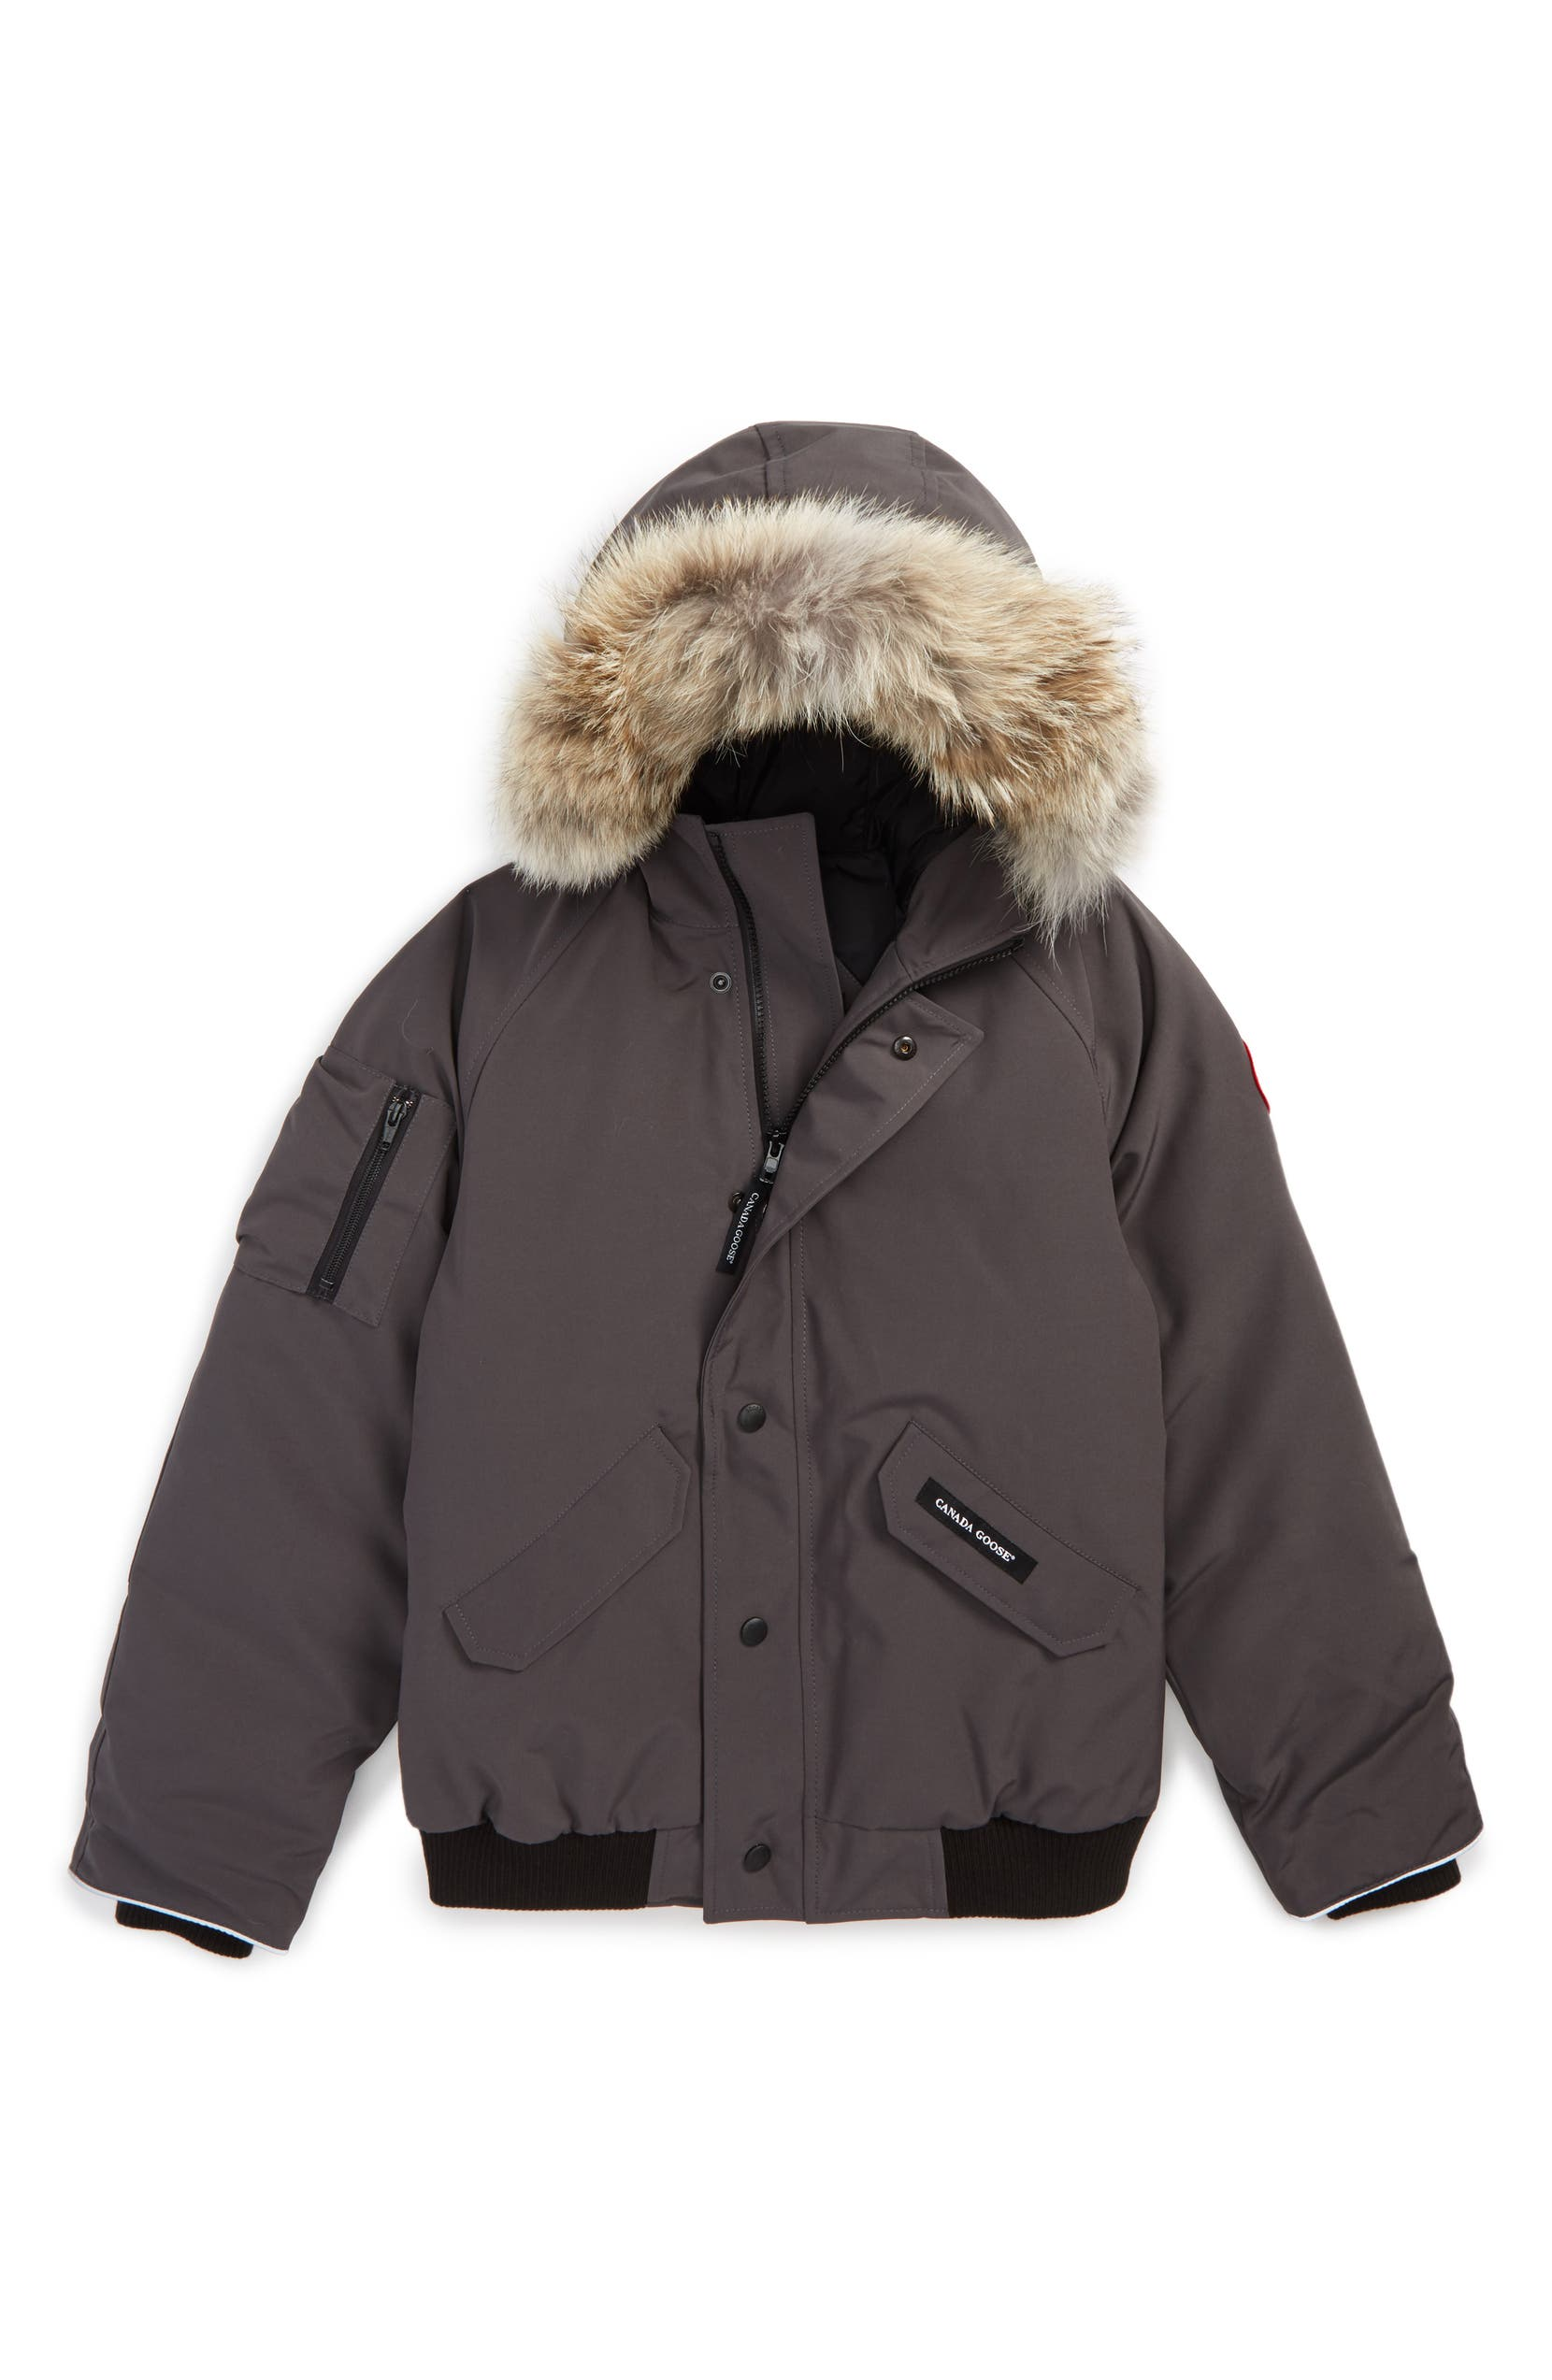 b36833bf6 'Rundle' Down Bomber Jacket with Genuine Coyote Fur Trim